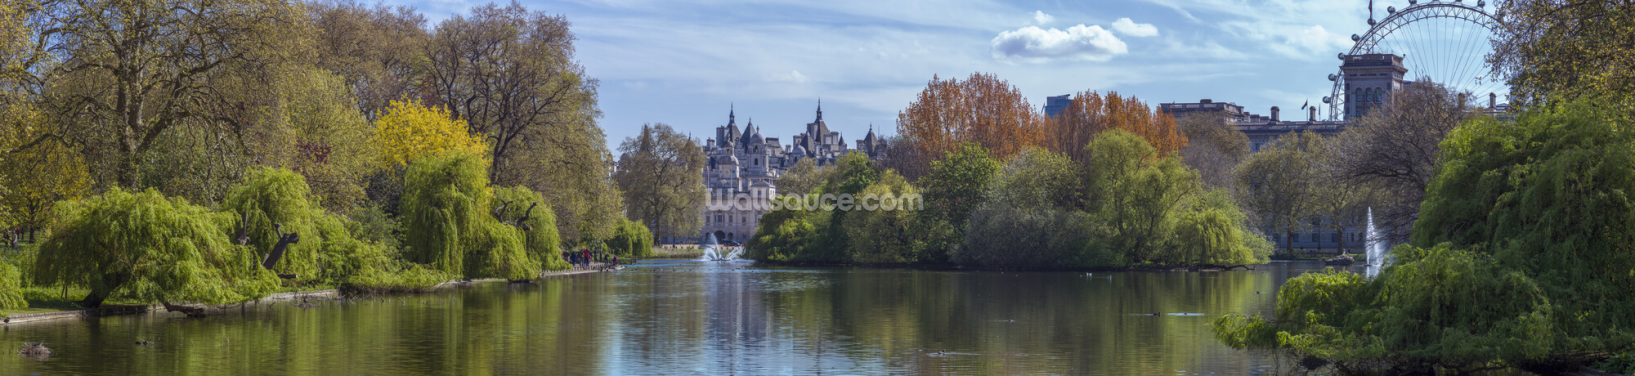 St James Park in London Wallpaper Wall Murals